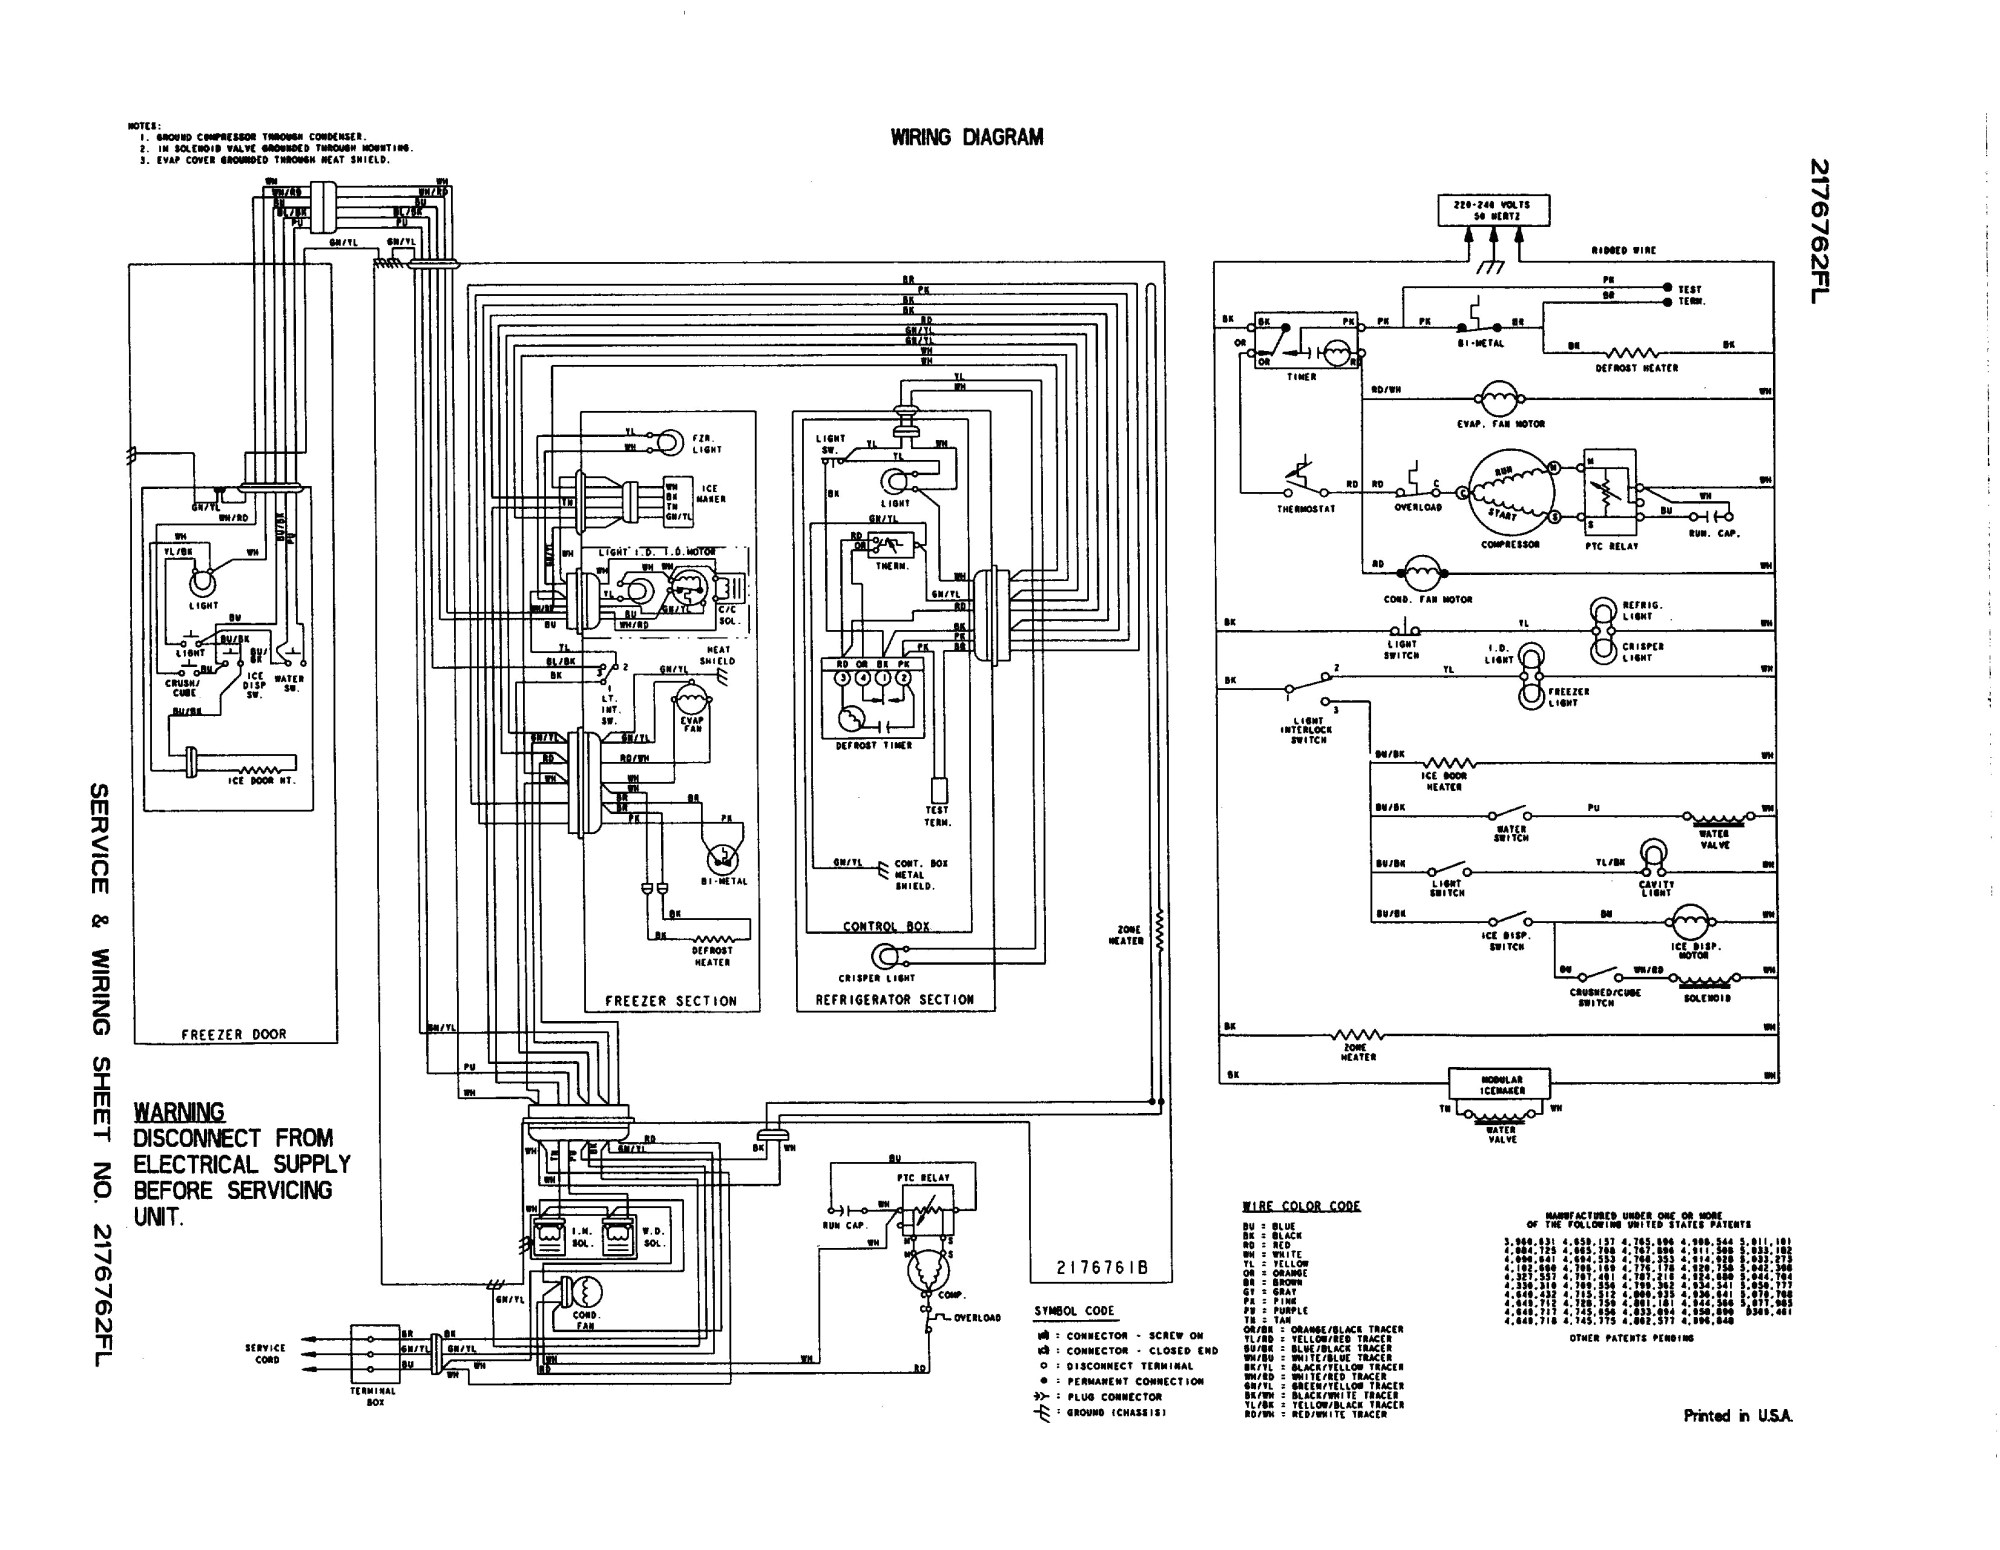 hight resolution of kenmore refrigerator wiring schematic free wiring diagram kenmore refrigerator wiring schematic whirlpool refrigerator wiring diagram collection